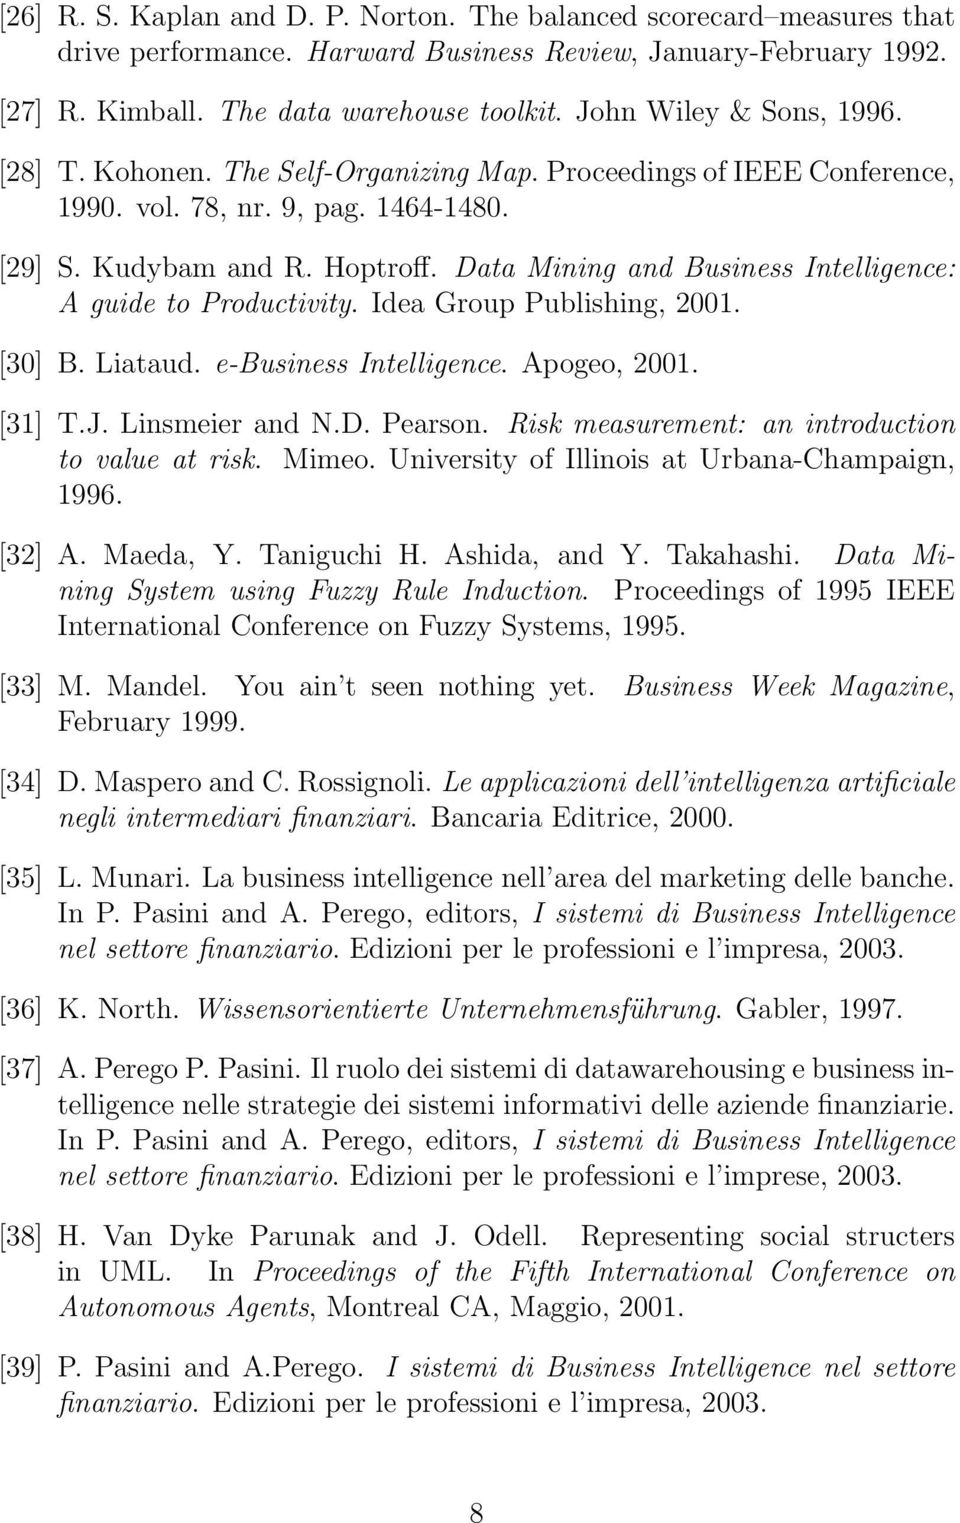 Data Mining and Business Intelligence: A guide to Productivity. Idea Group Publishing, 2001. [30] B. Liataud. e-business Intelligence. Apogeo, 2001. [31] T.J. Linsmeier and N.D. Pearson.